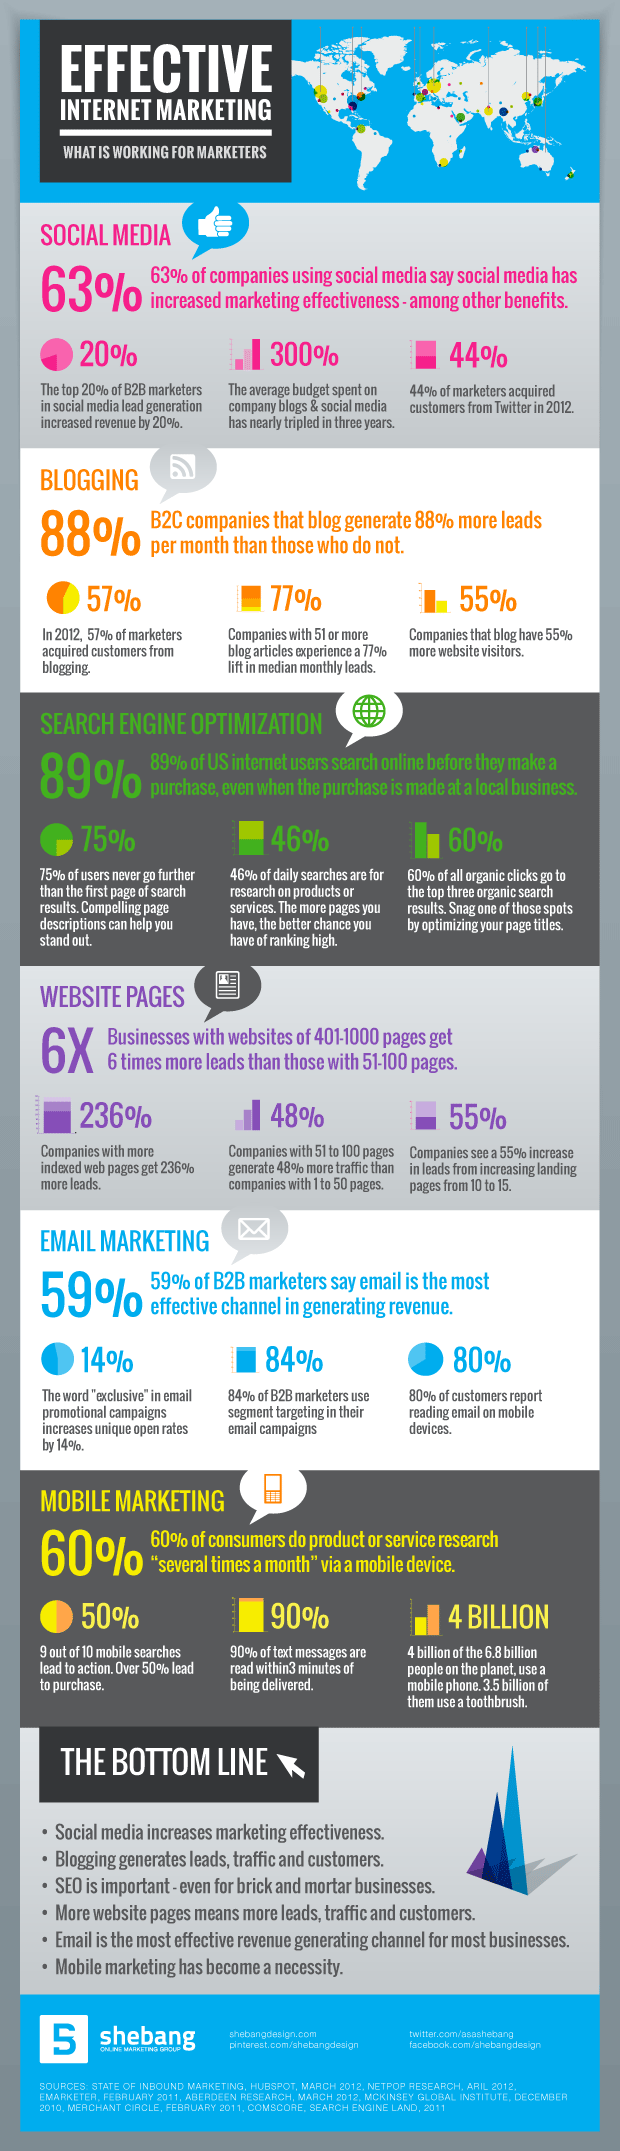 effective-internet-marketing-2013-infographic